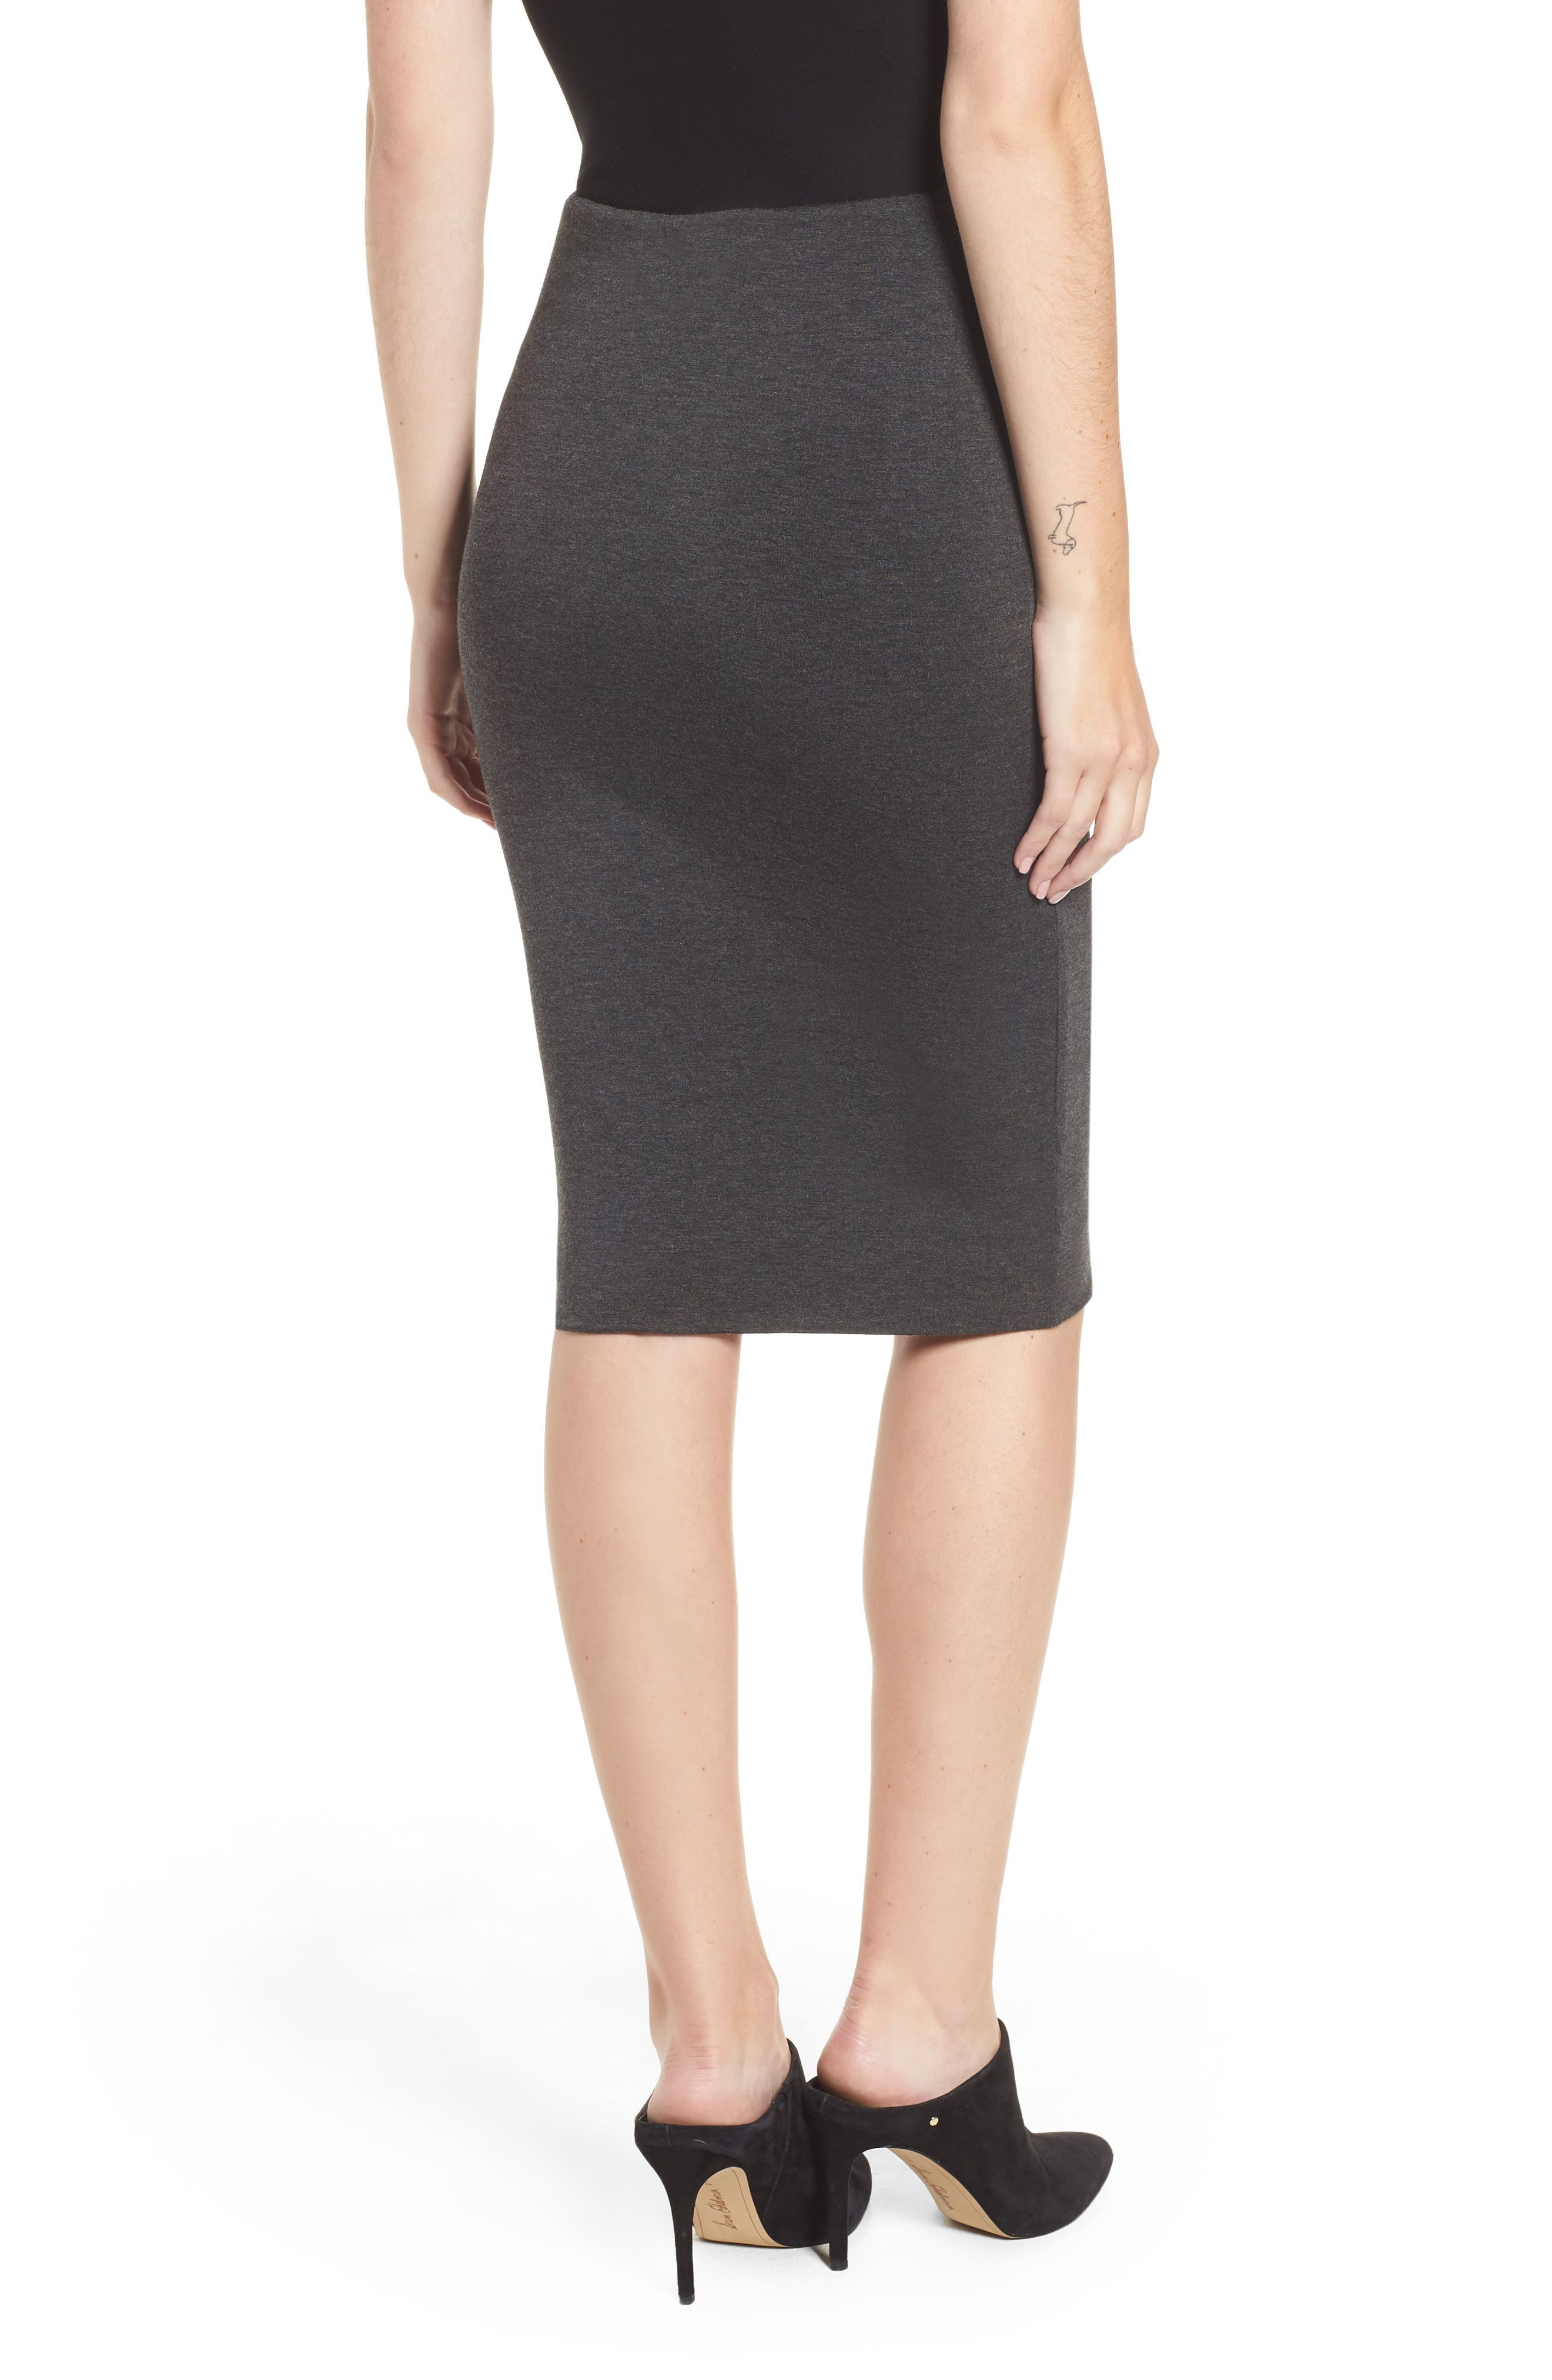 AMOUR VERT,                             'Yuma' Stretch Knit Skirt,                             Alternate thumbnail 2, color,                             ANTHRACITE